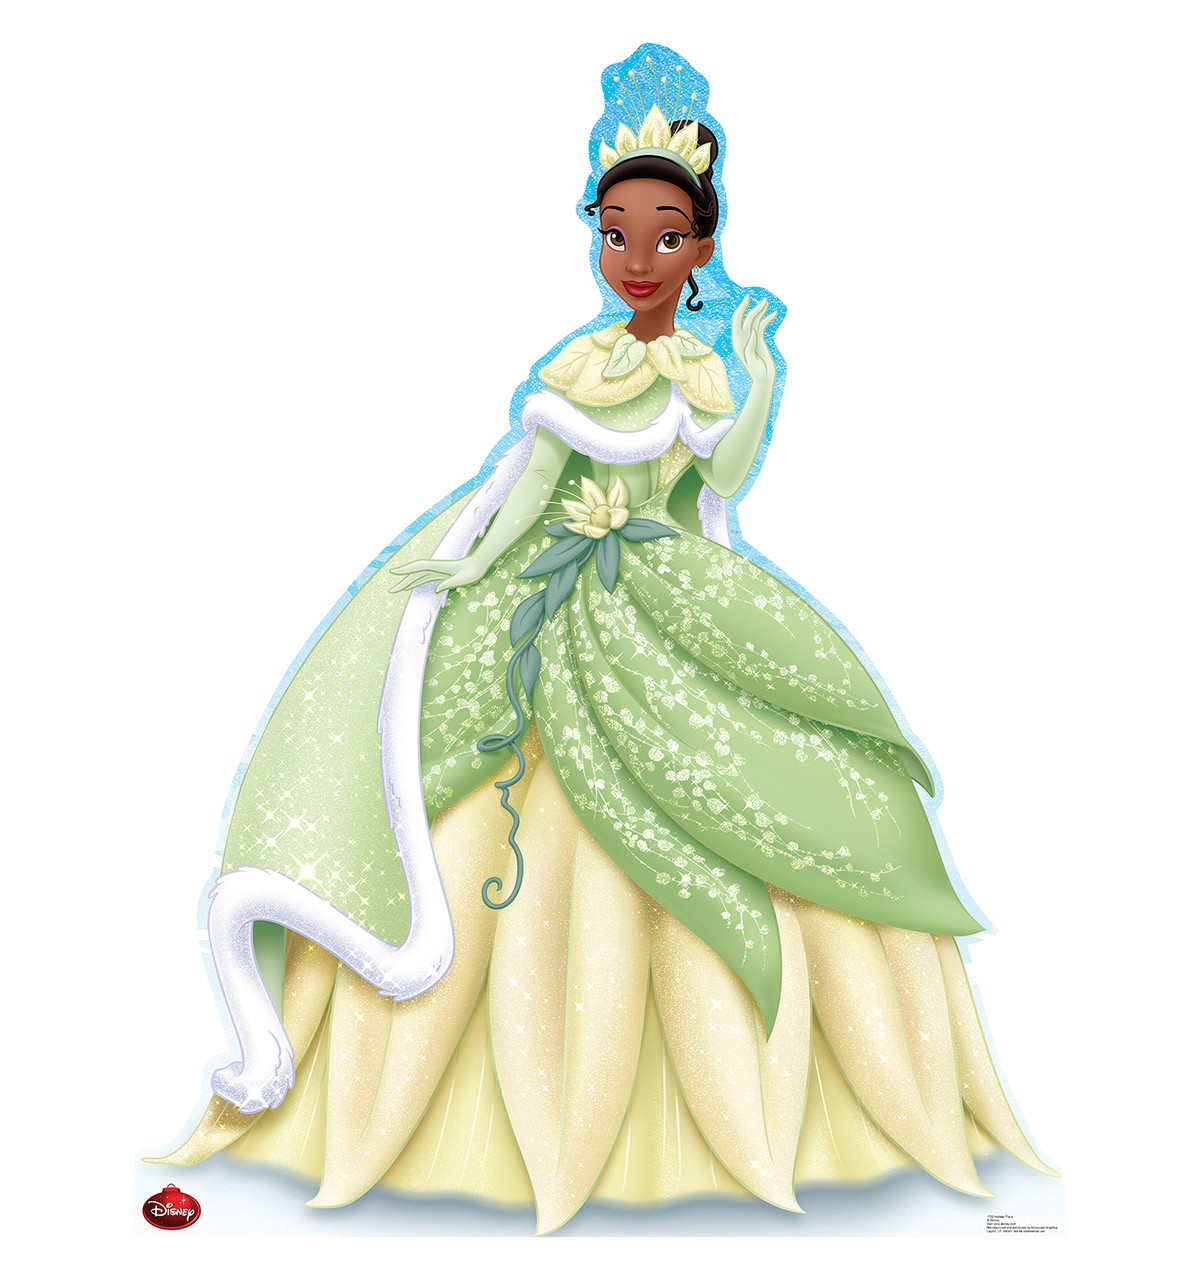 Life-size Holiday Tiana - Limited Time Edition! Cardboard Standup | Cardboard Cutout